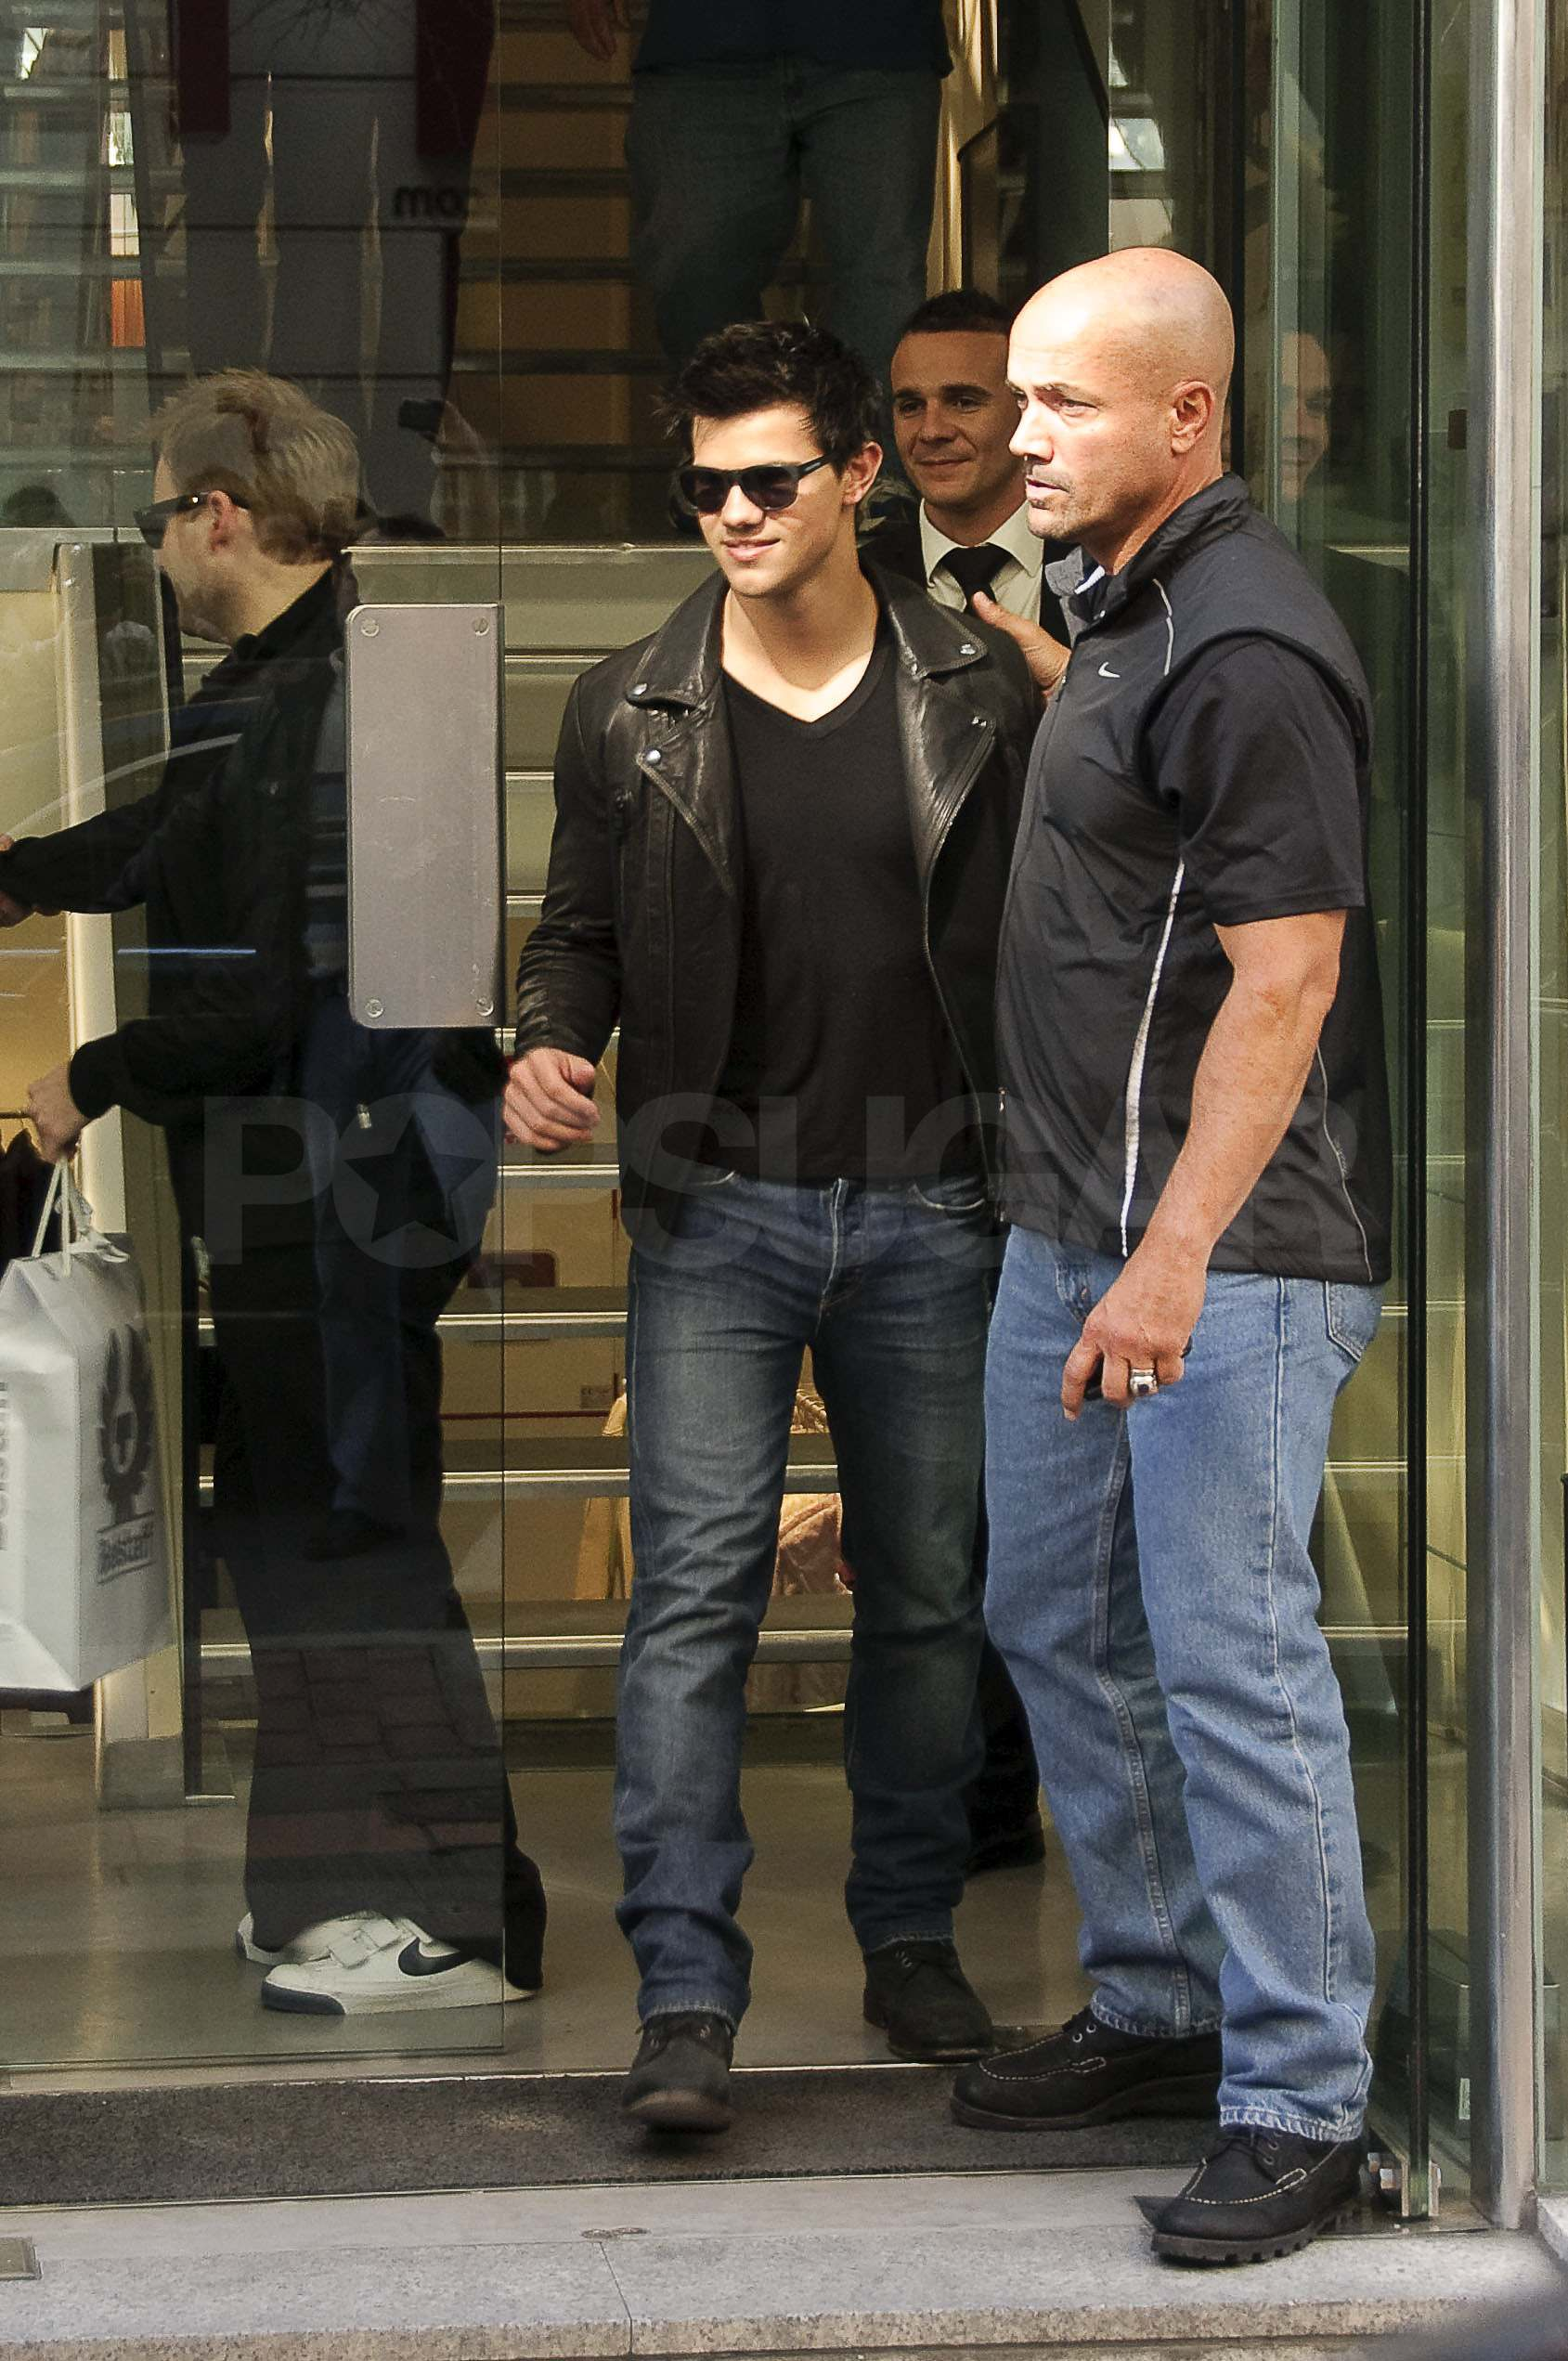 Taylor Lautner With His Family Images & Pictures - Becuo Taylor Lautner